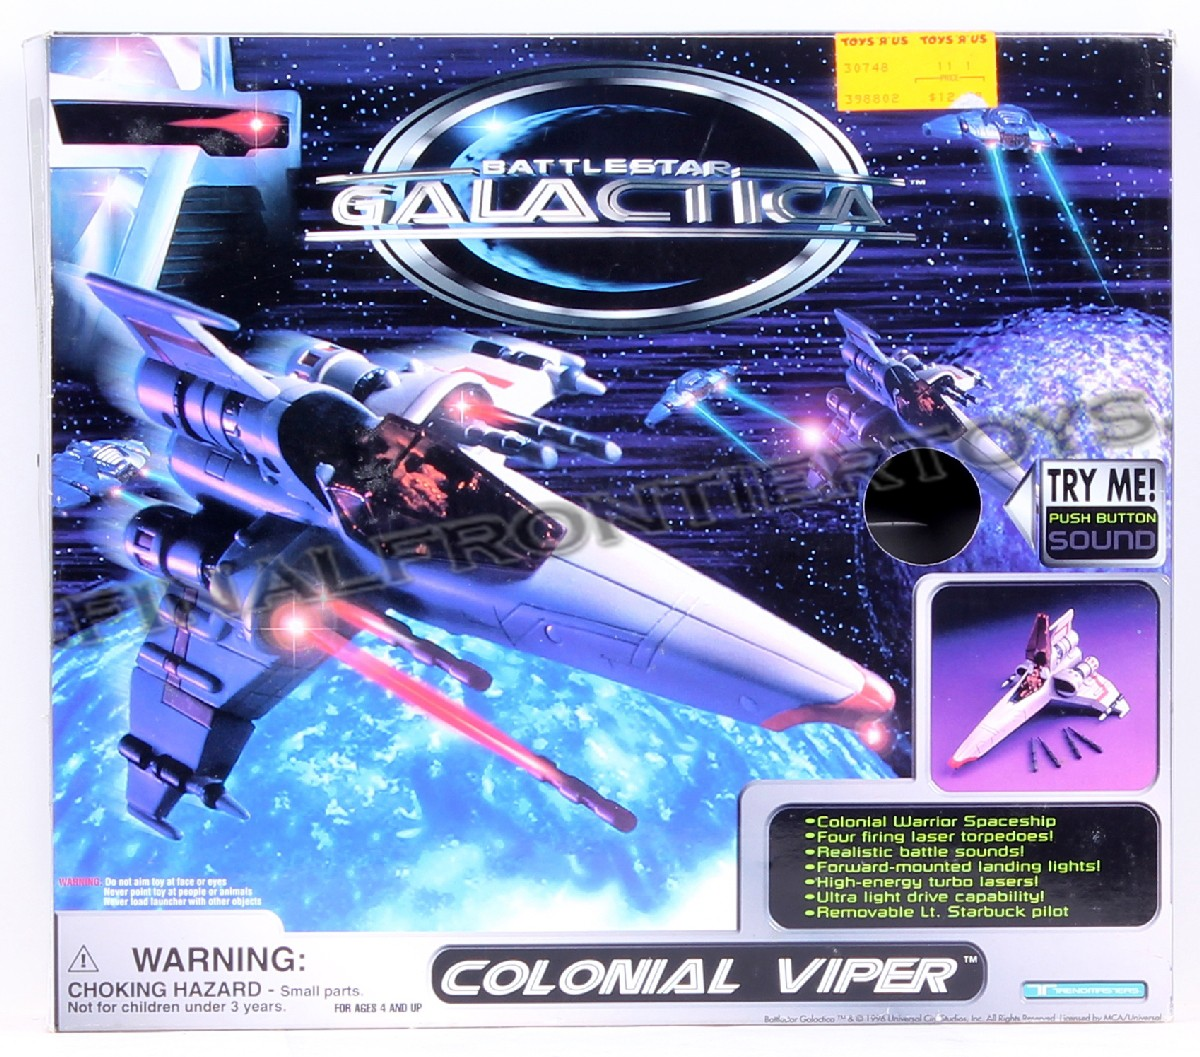 Trendmasters Colonial Viper